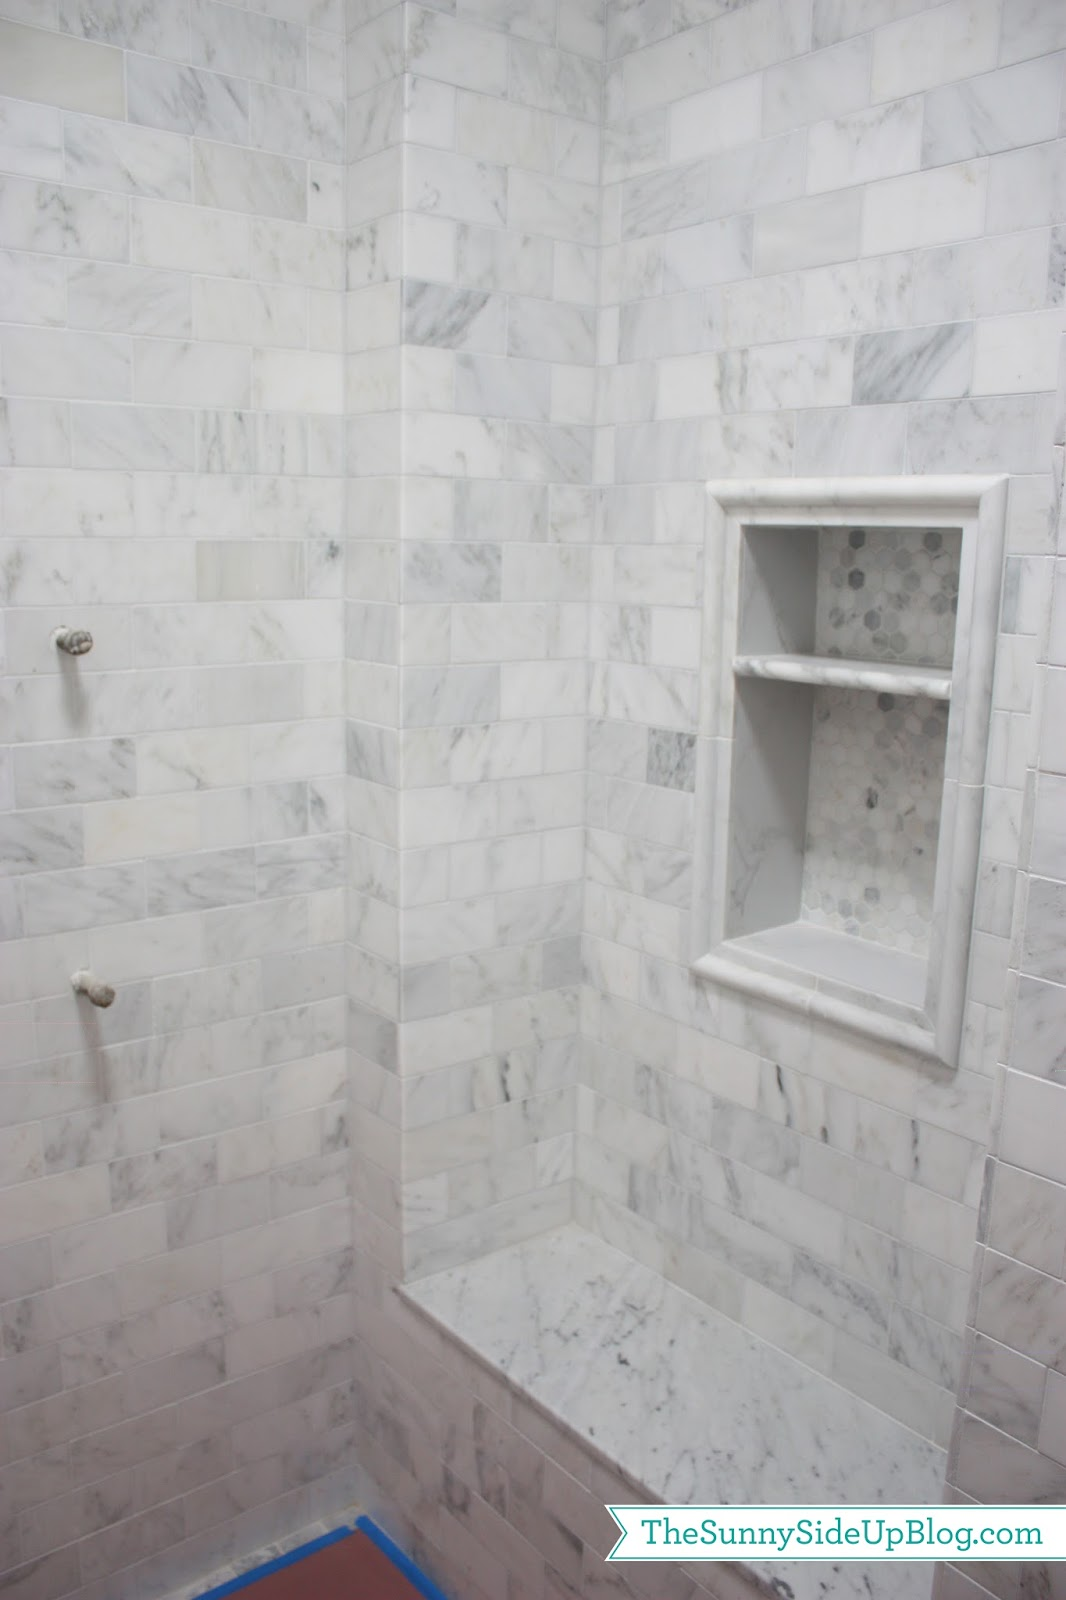 Carrara marble dreams! - The Sunny Side Up Blog